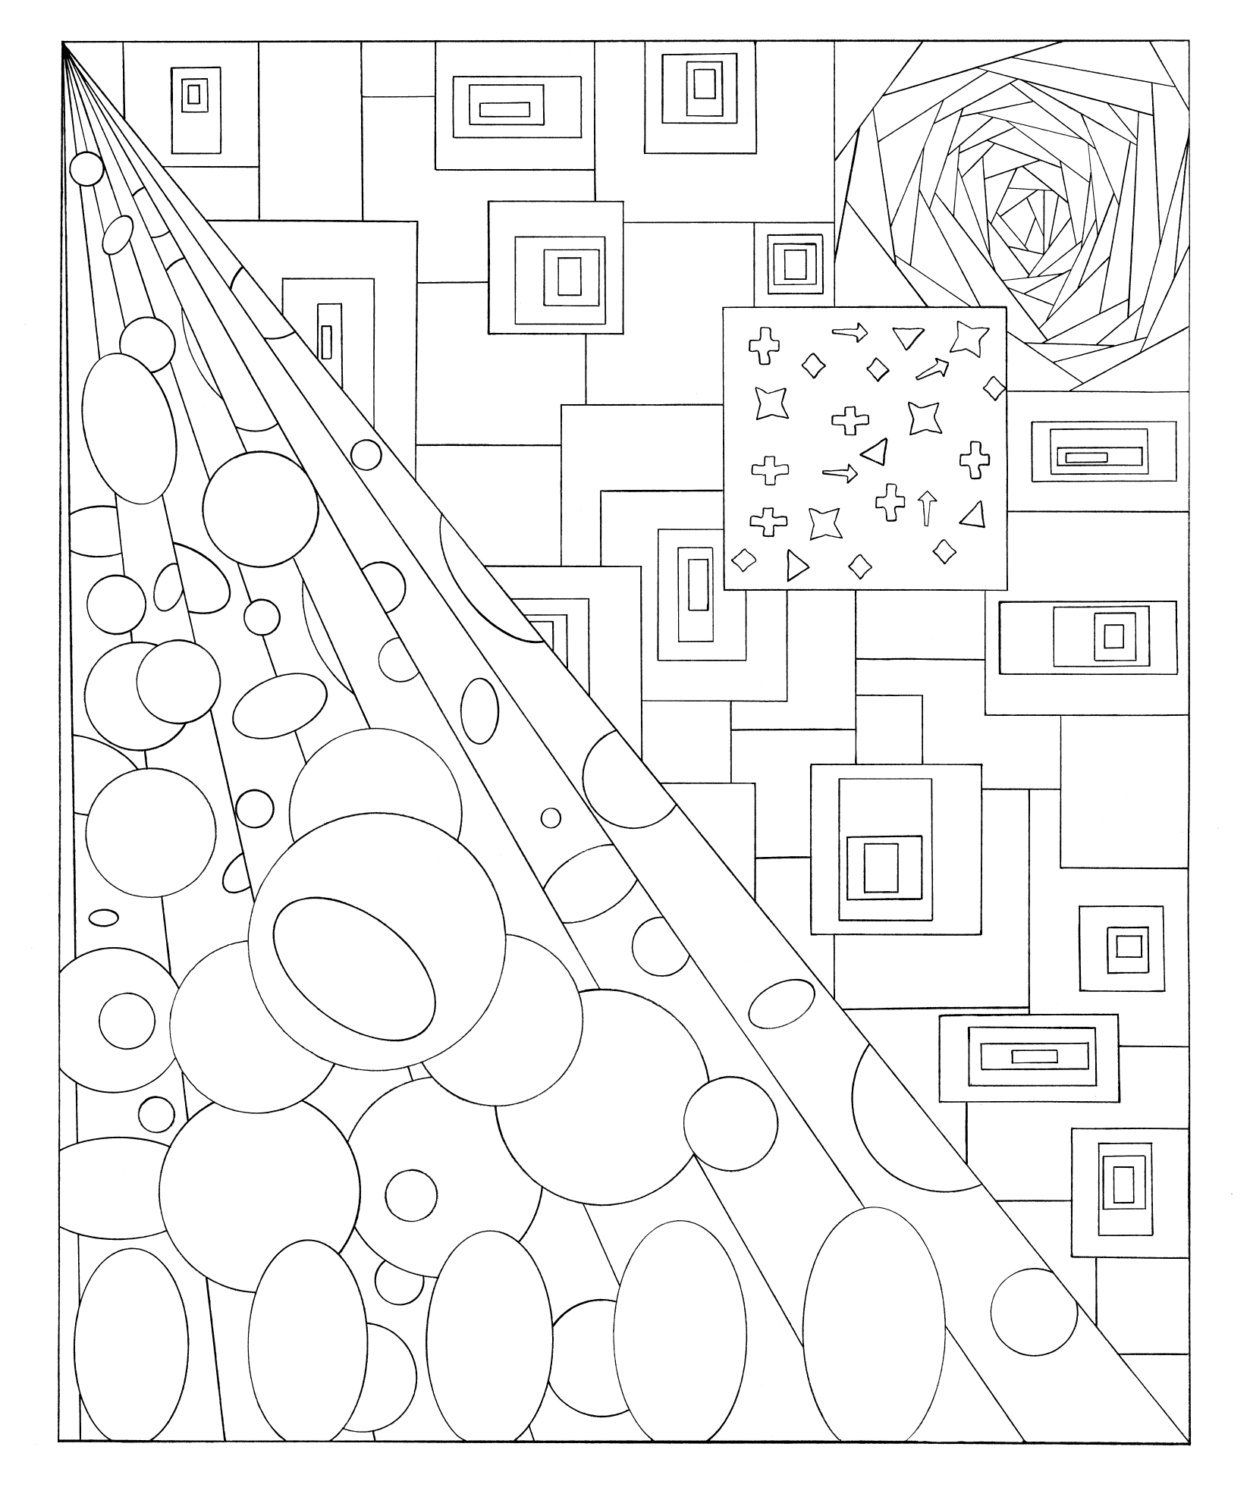 medium resolution of tunnel vision adult coloring page book sheets outline art etsy